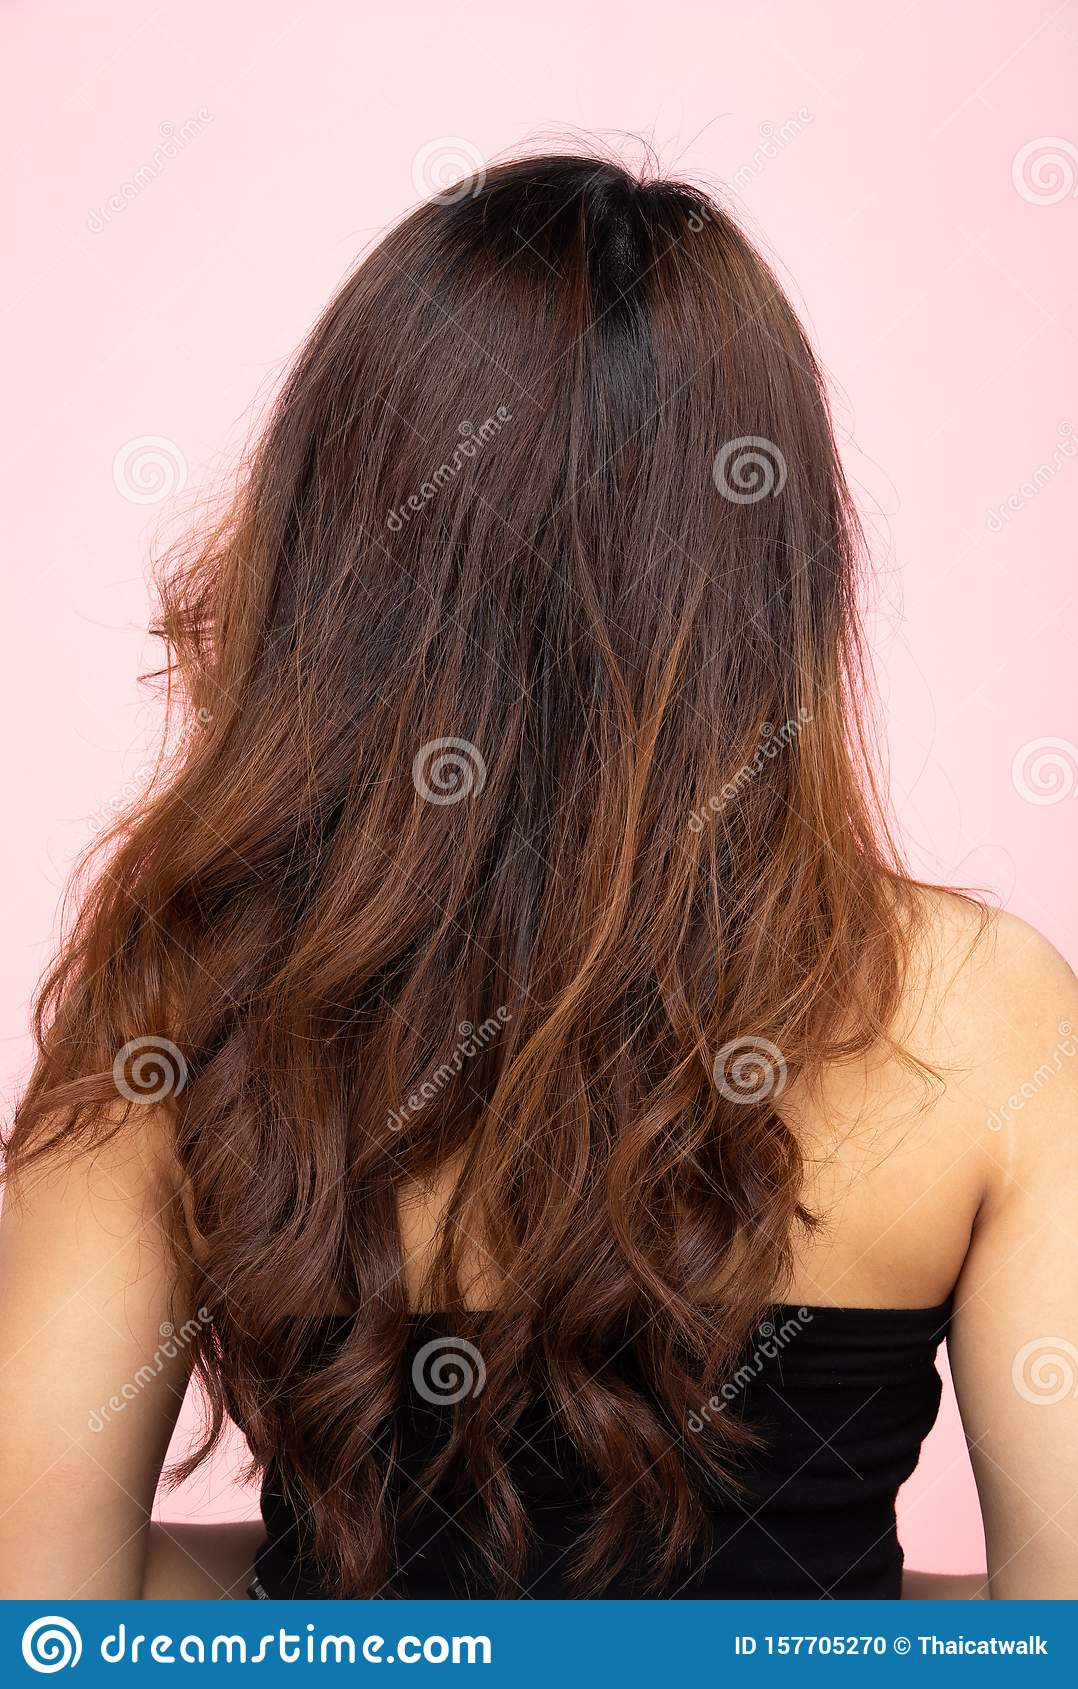 Back Side View Of Women To Show Hair Style Stock Photo Image Of Hair Korea 157705270